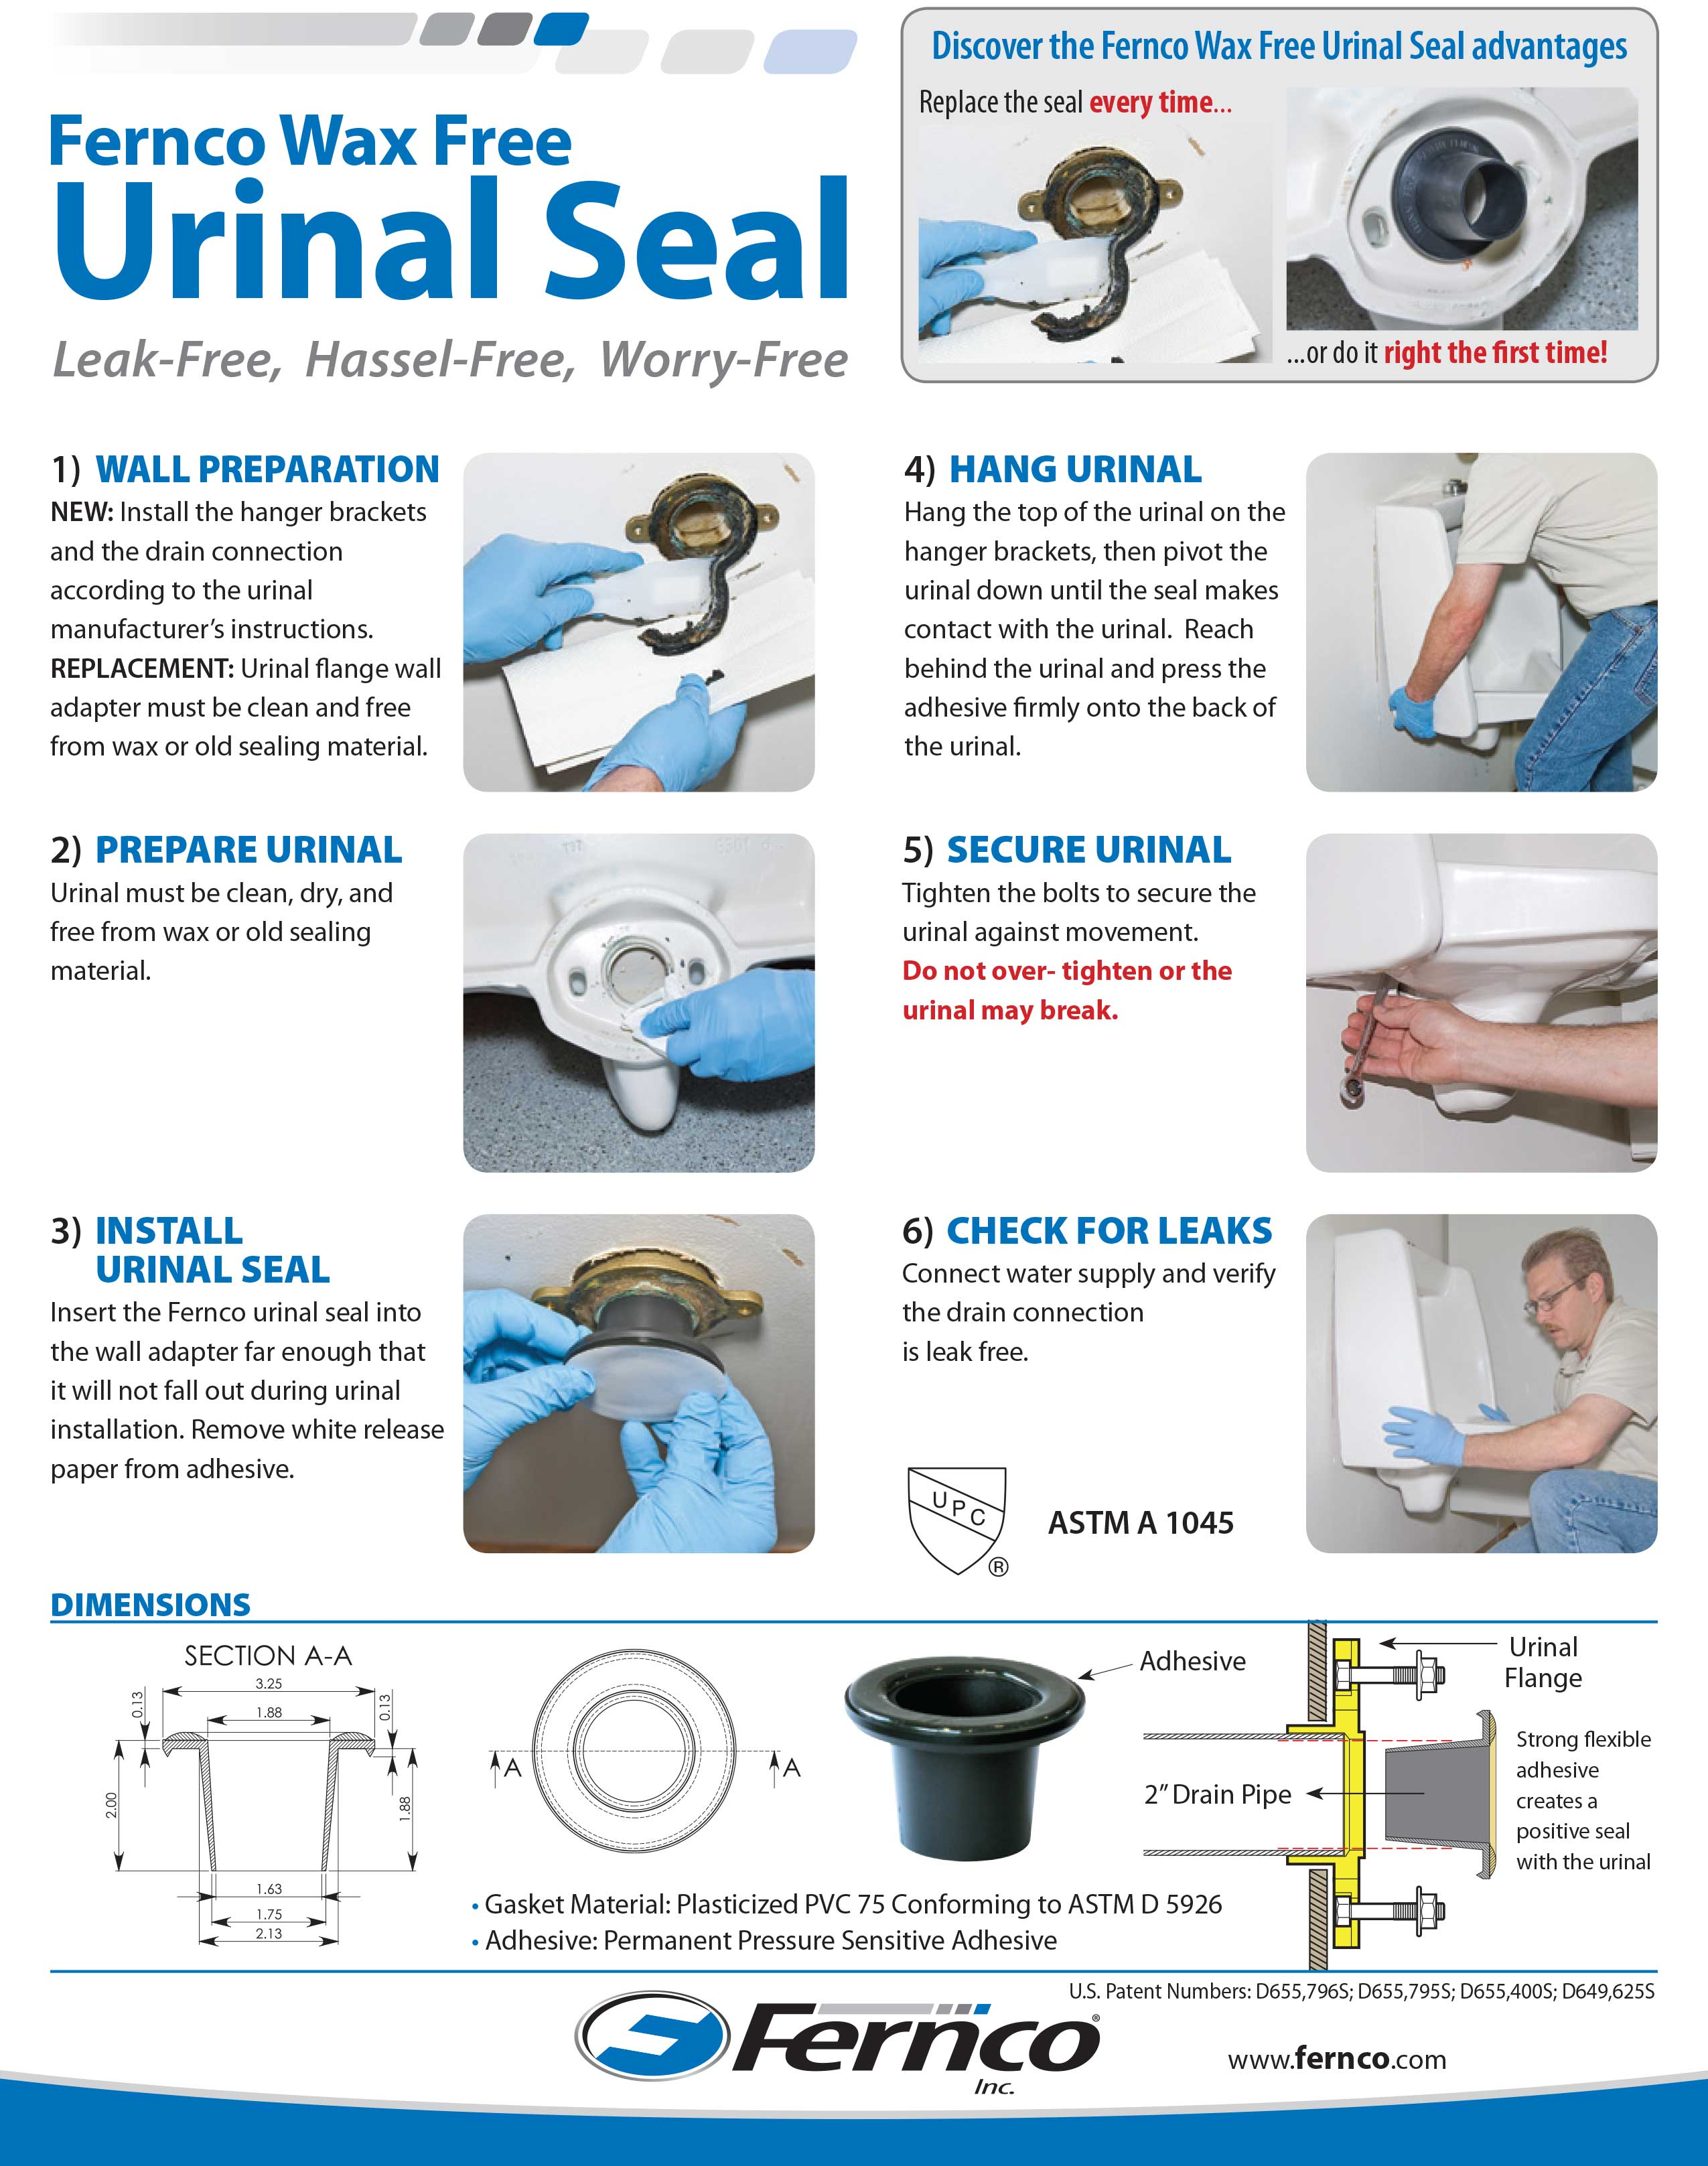 Comerica Wiring Instructions : Fernco wax free urinal seal wood plumbing supply